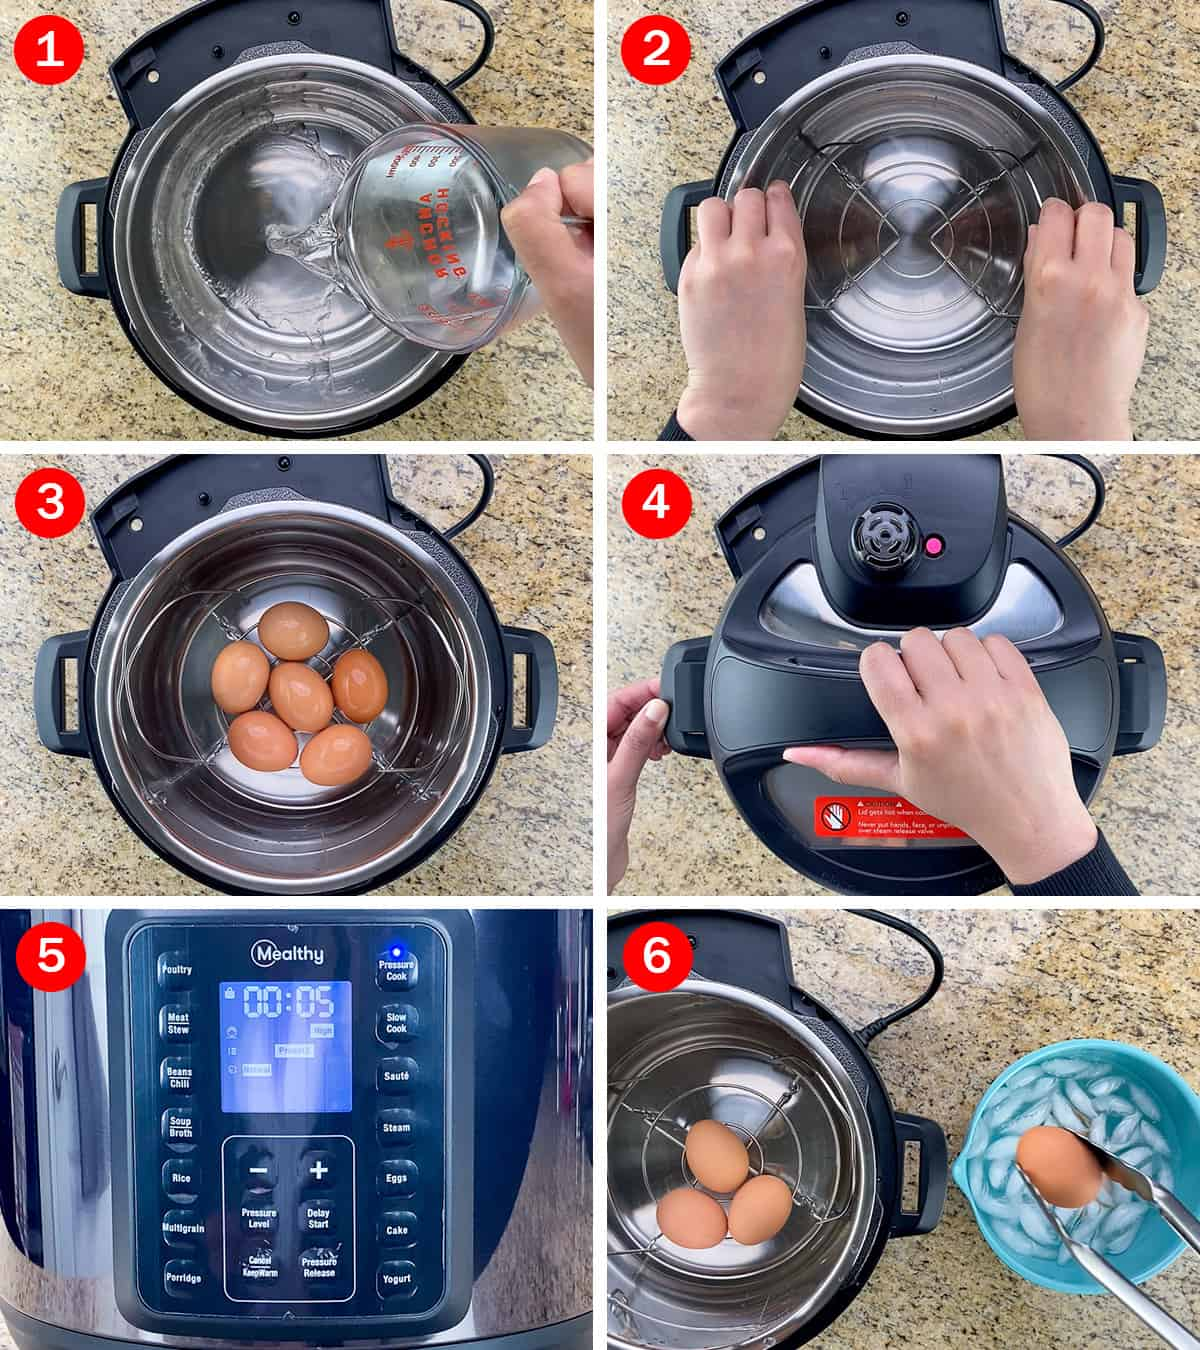 step by step photos of hard boiling eggs in the mealthy multipot